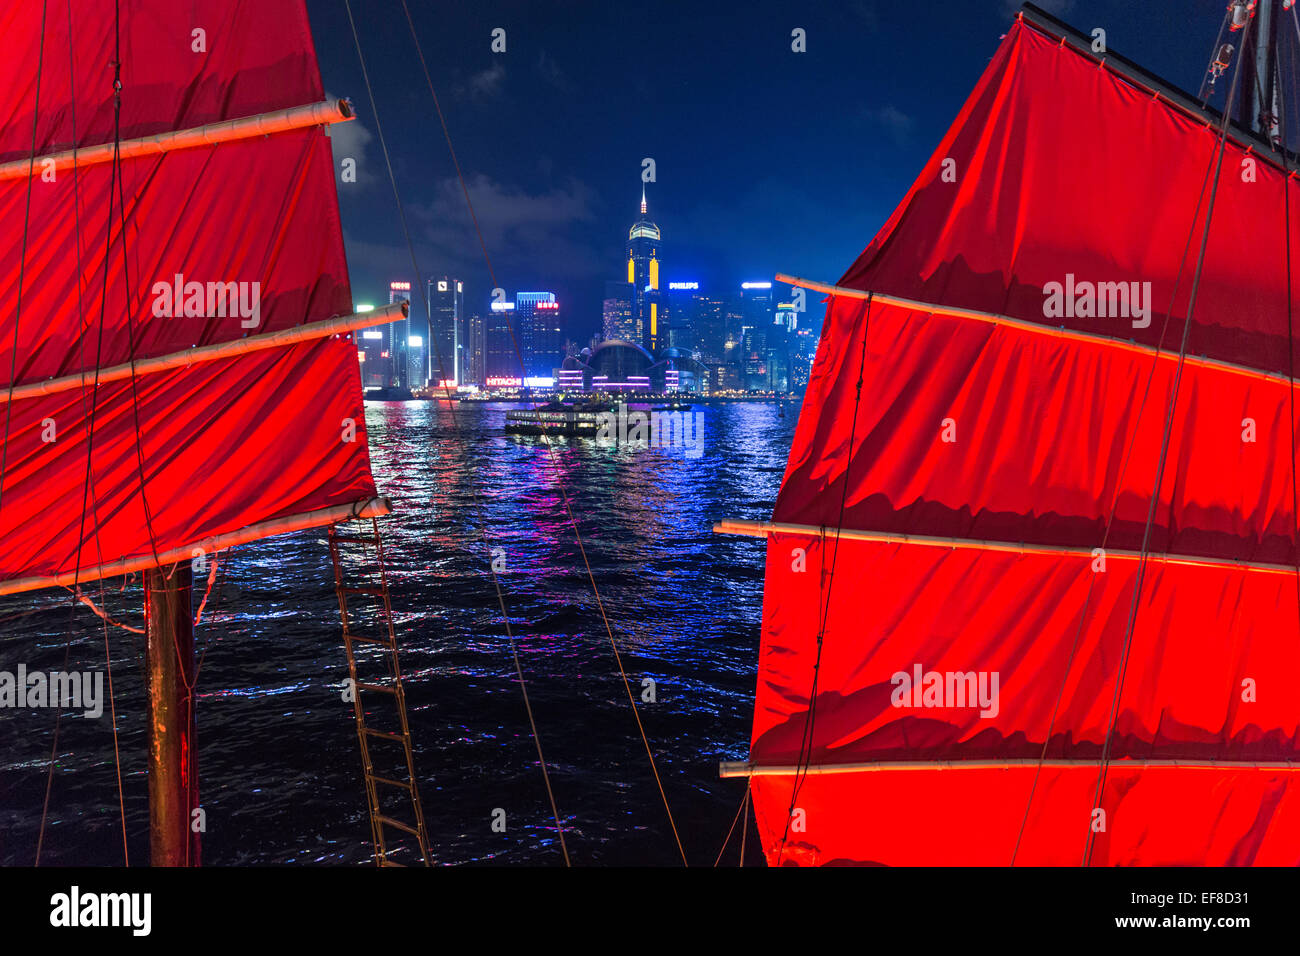 Night view of Hong Kong skyline from Kowloon side with sails of junk in foreground - Stock Image